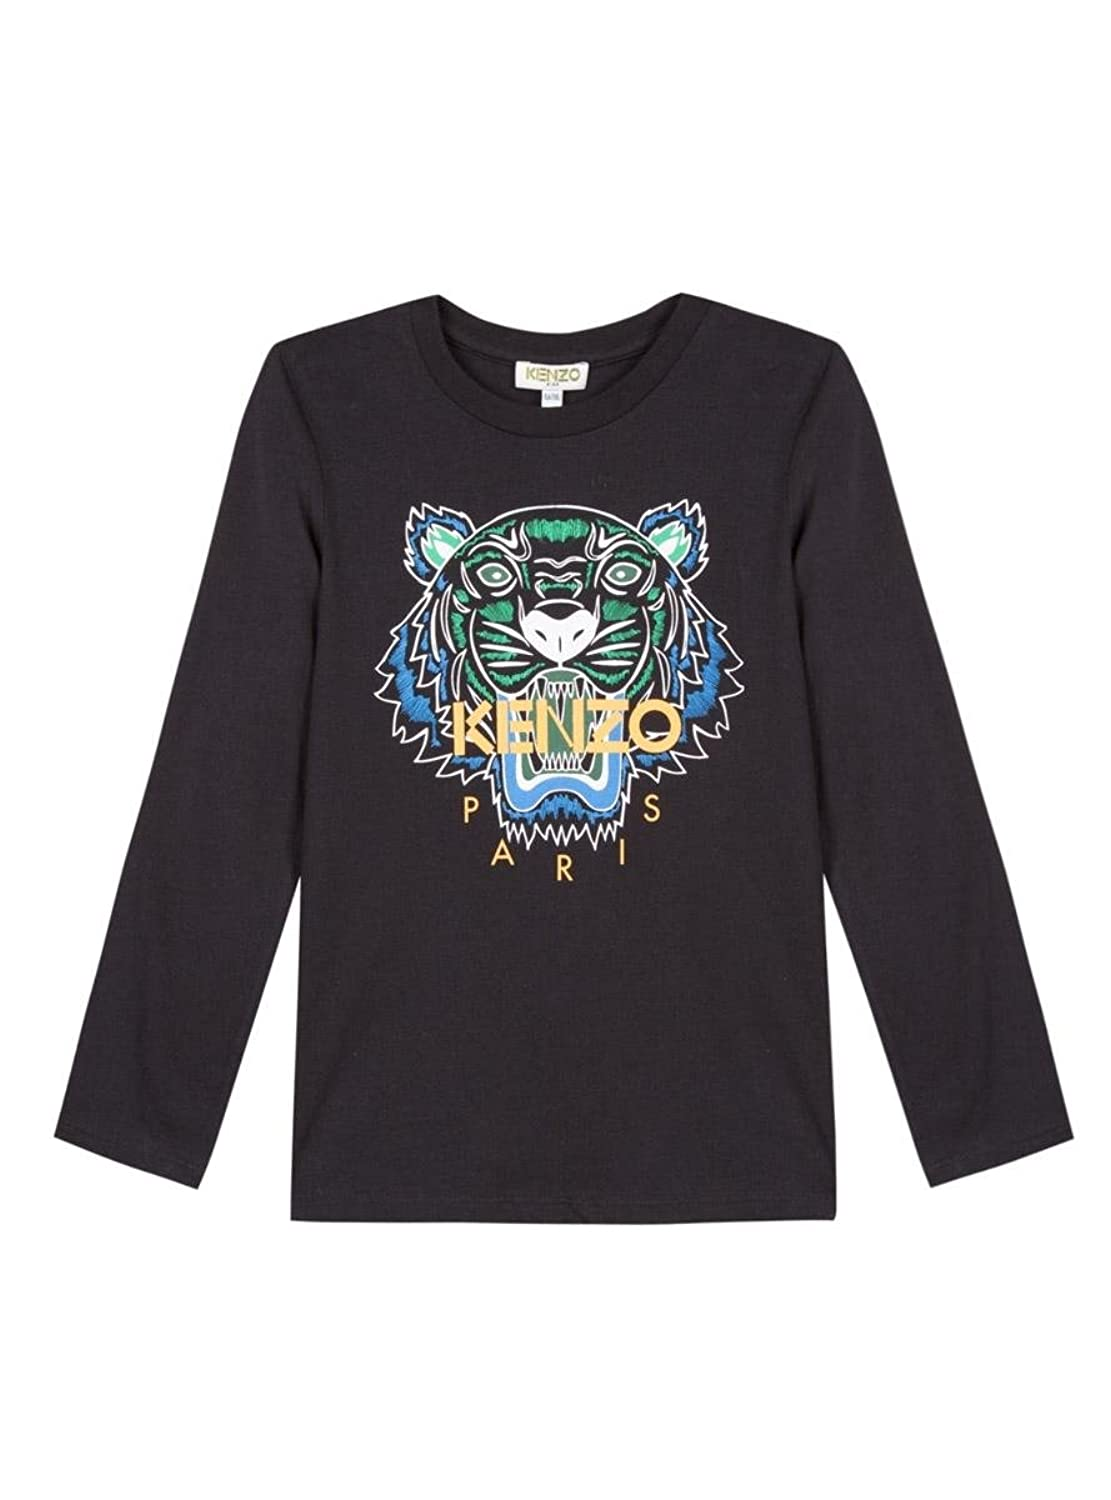 0ddaff8b Top 10 wholesale Kenzo T Shirt Size - Chinabrands.com